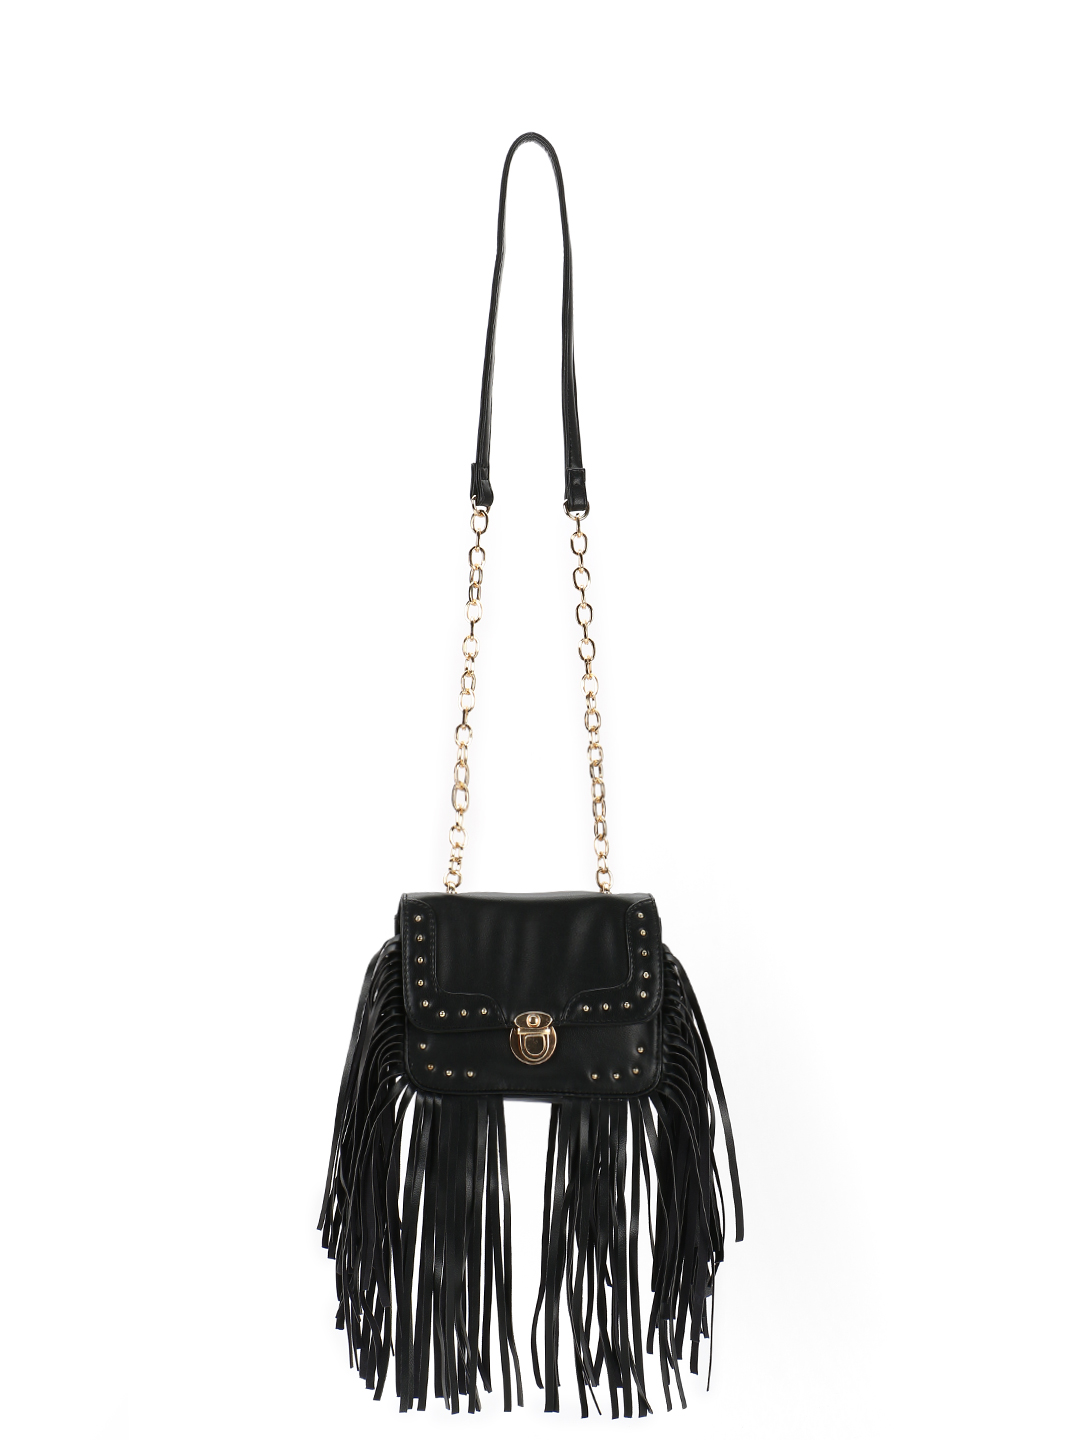 Paris Belle Black Stud Detail Sling Bag 1